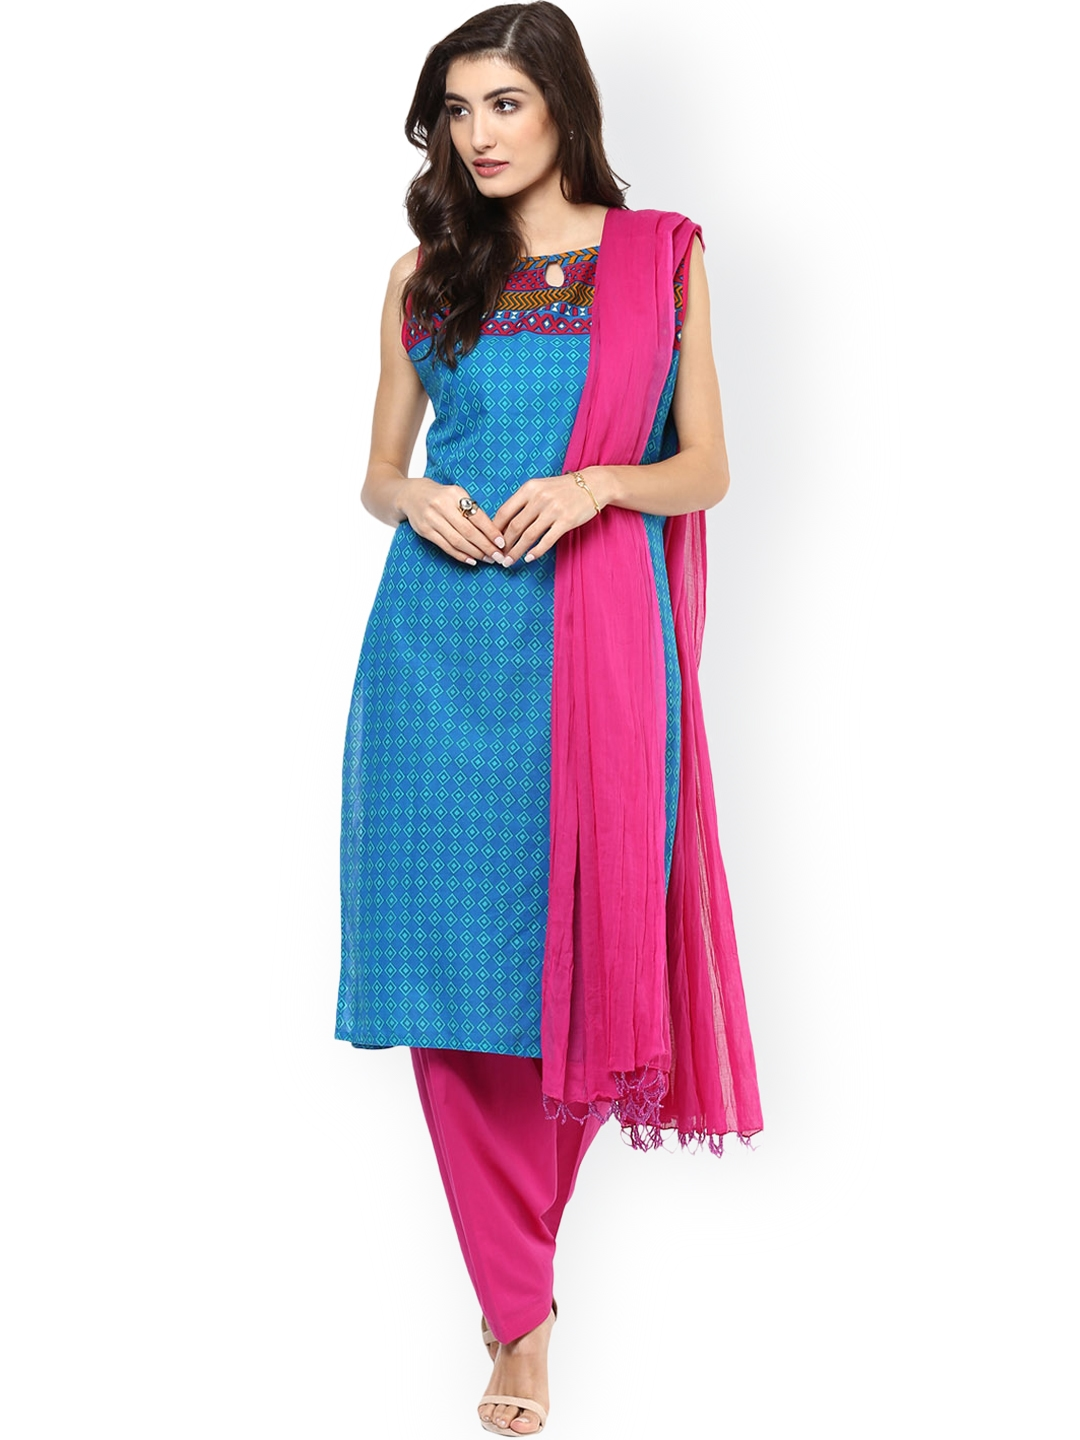 Jaipur Kurti Blue   Pink Printed Salwar Suit with Dupatta